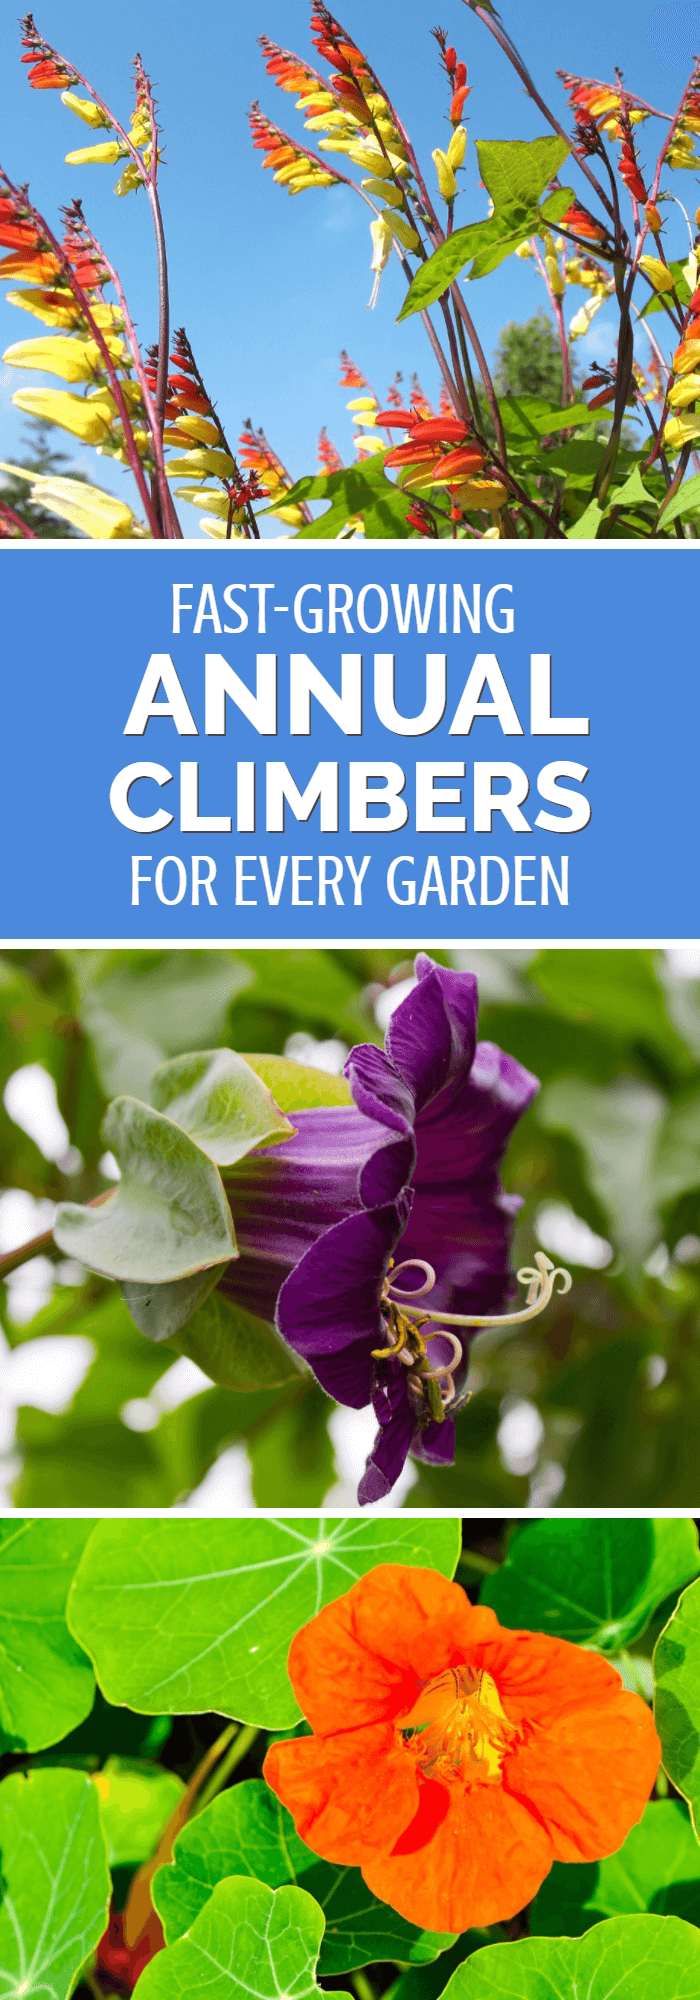 Add height and interest to your garden with this great range of annual climbers. Even started late in the season, many will explode with growth, providing privacy,. cover and a profusion of flowers. All gardeners should consider growing at least a few of these fast growing garden flowers.